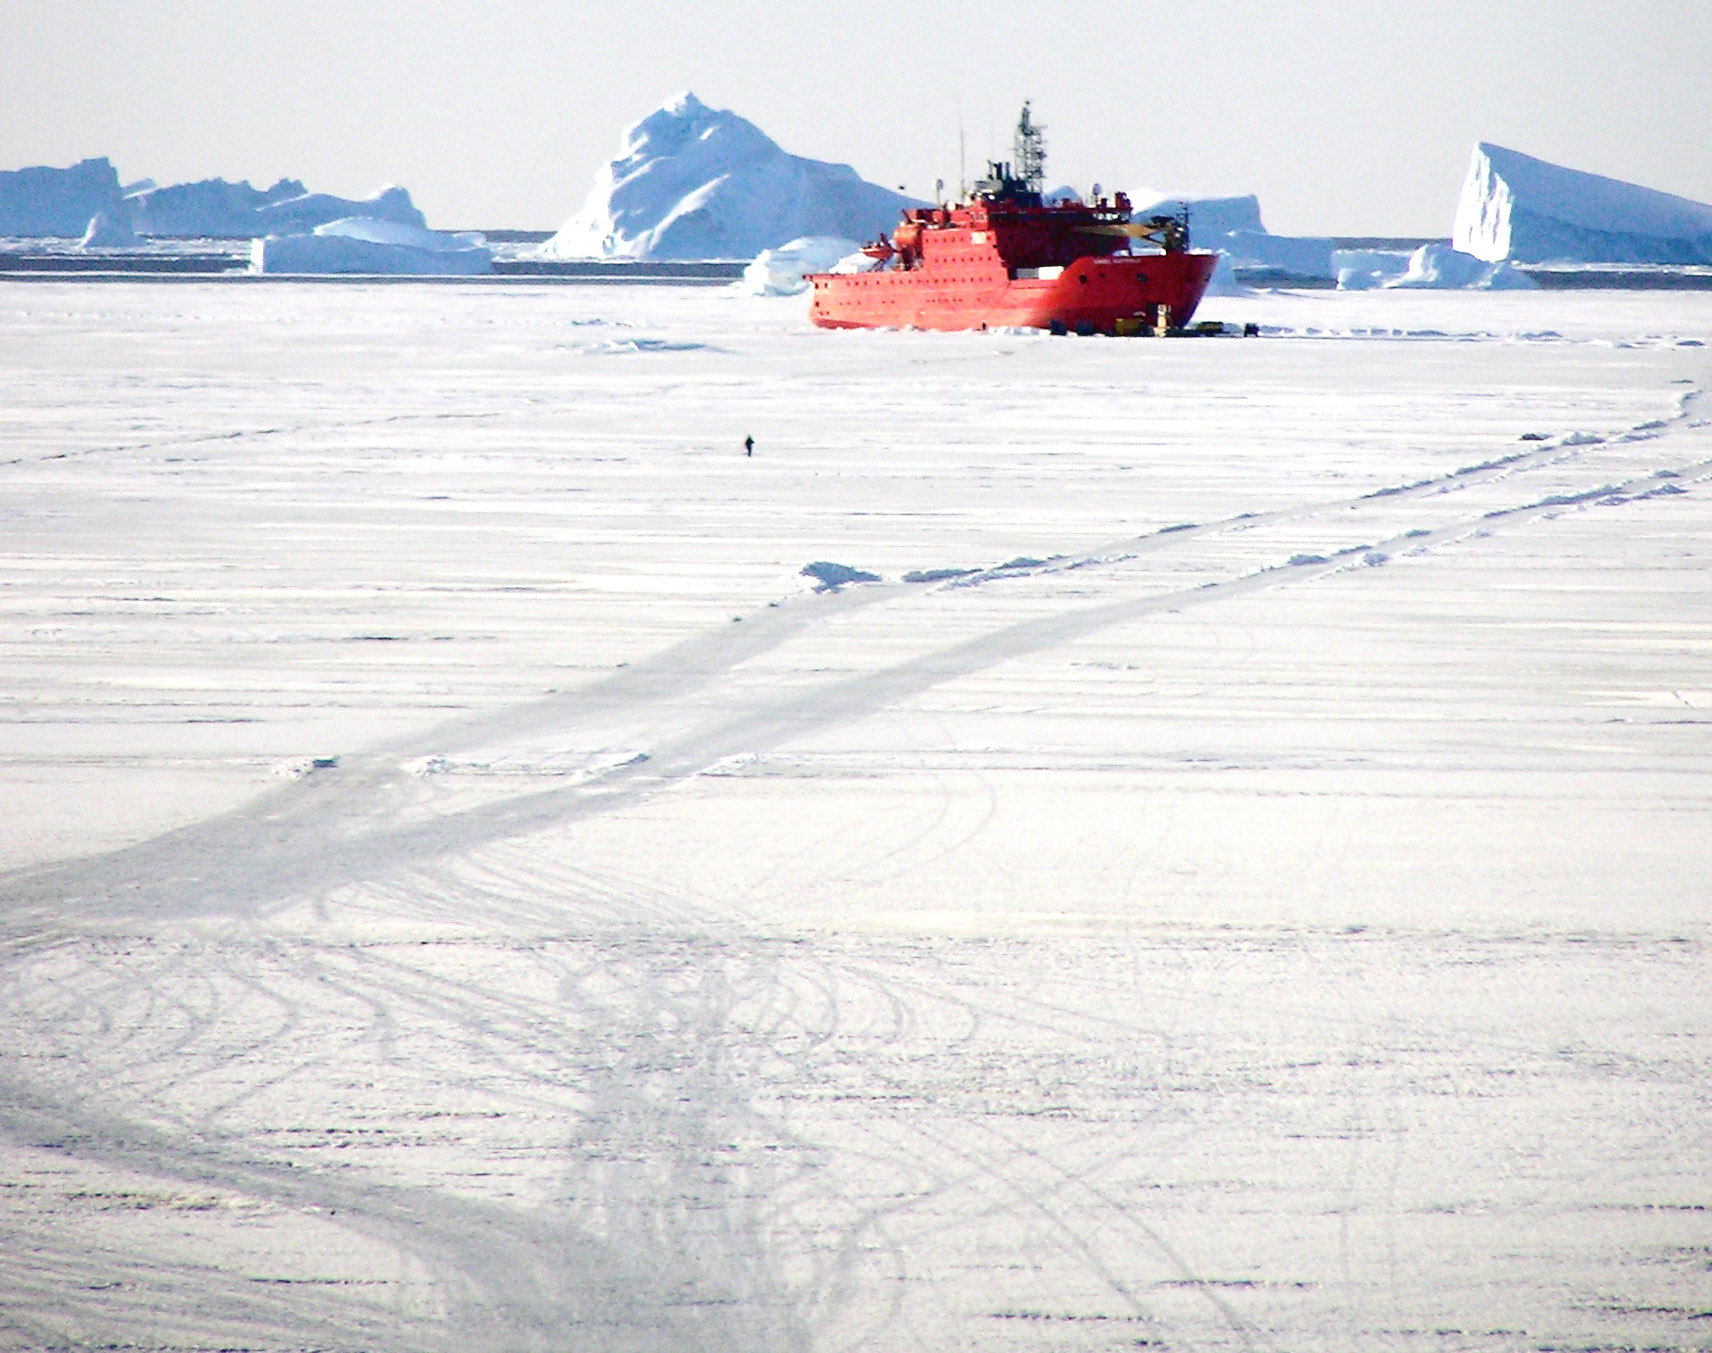 Finally, stuck fast in the ice of Antarctica, a gentle stroll from the station.